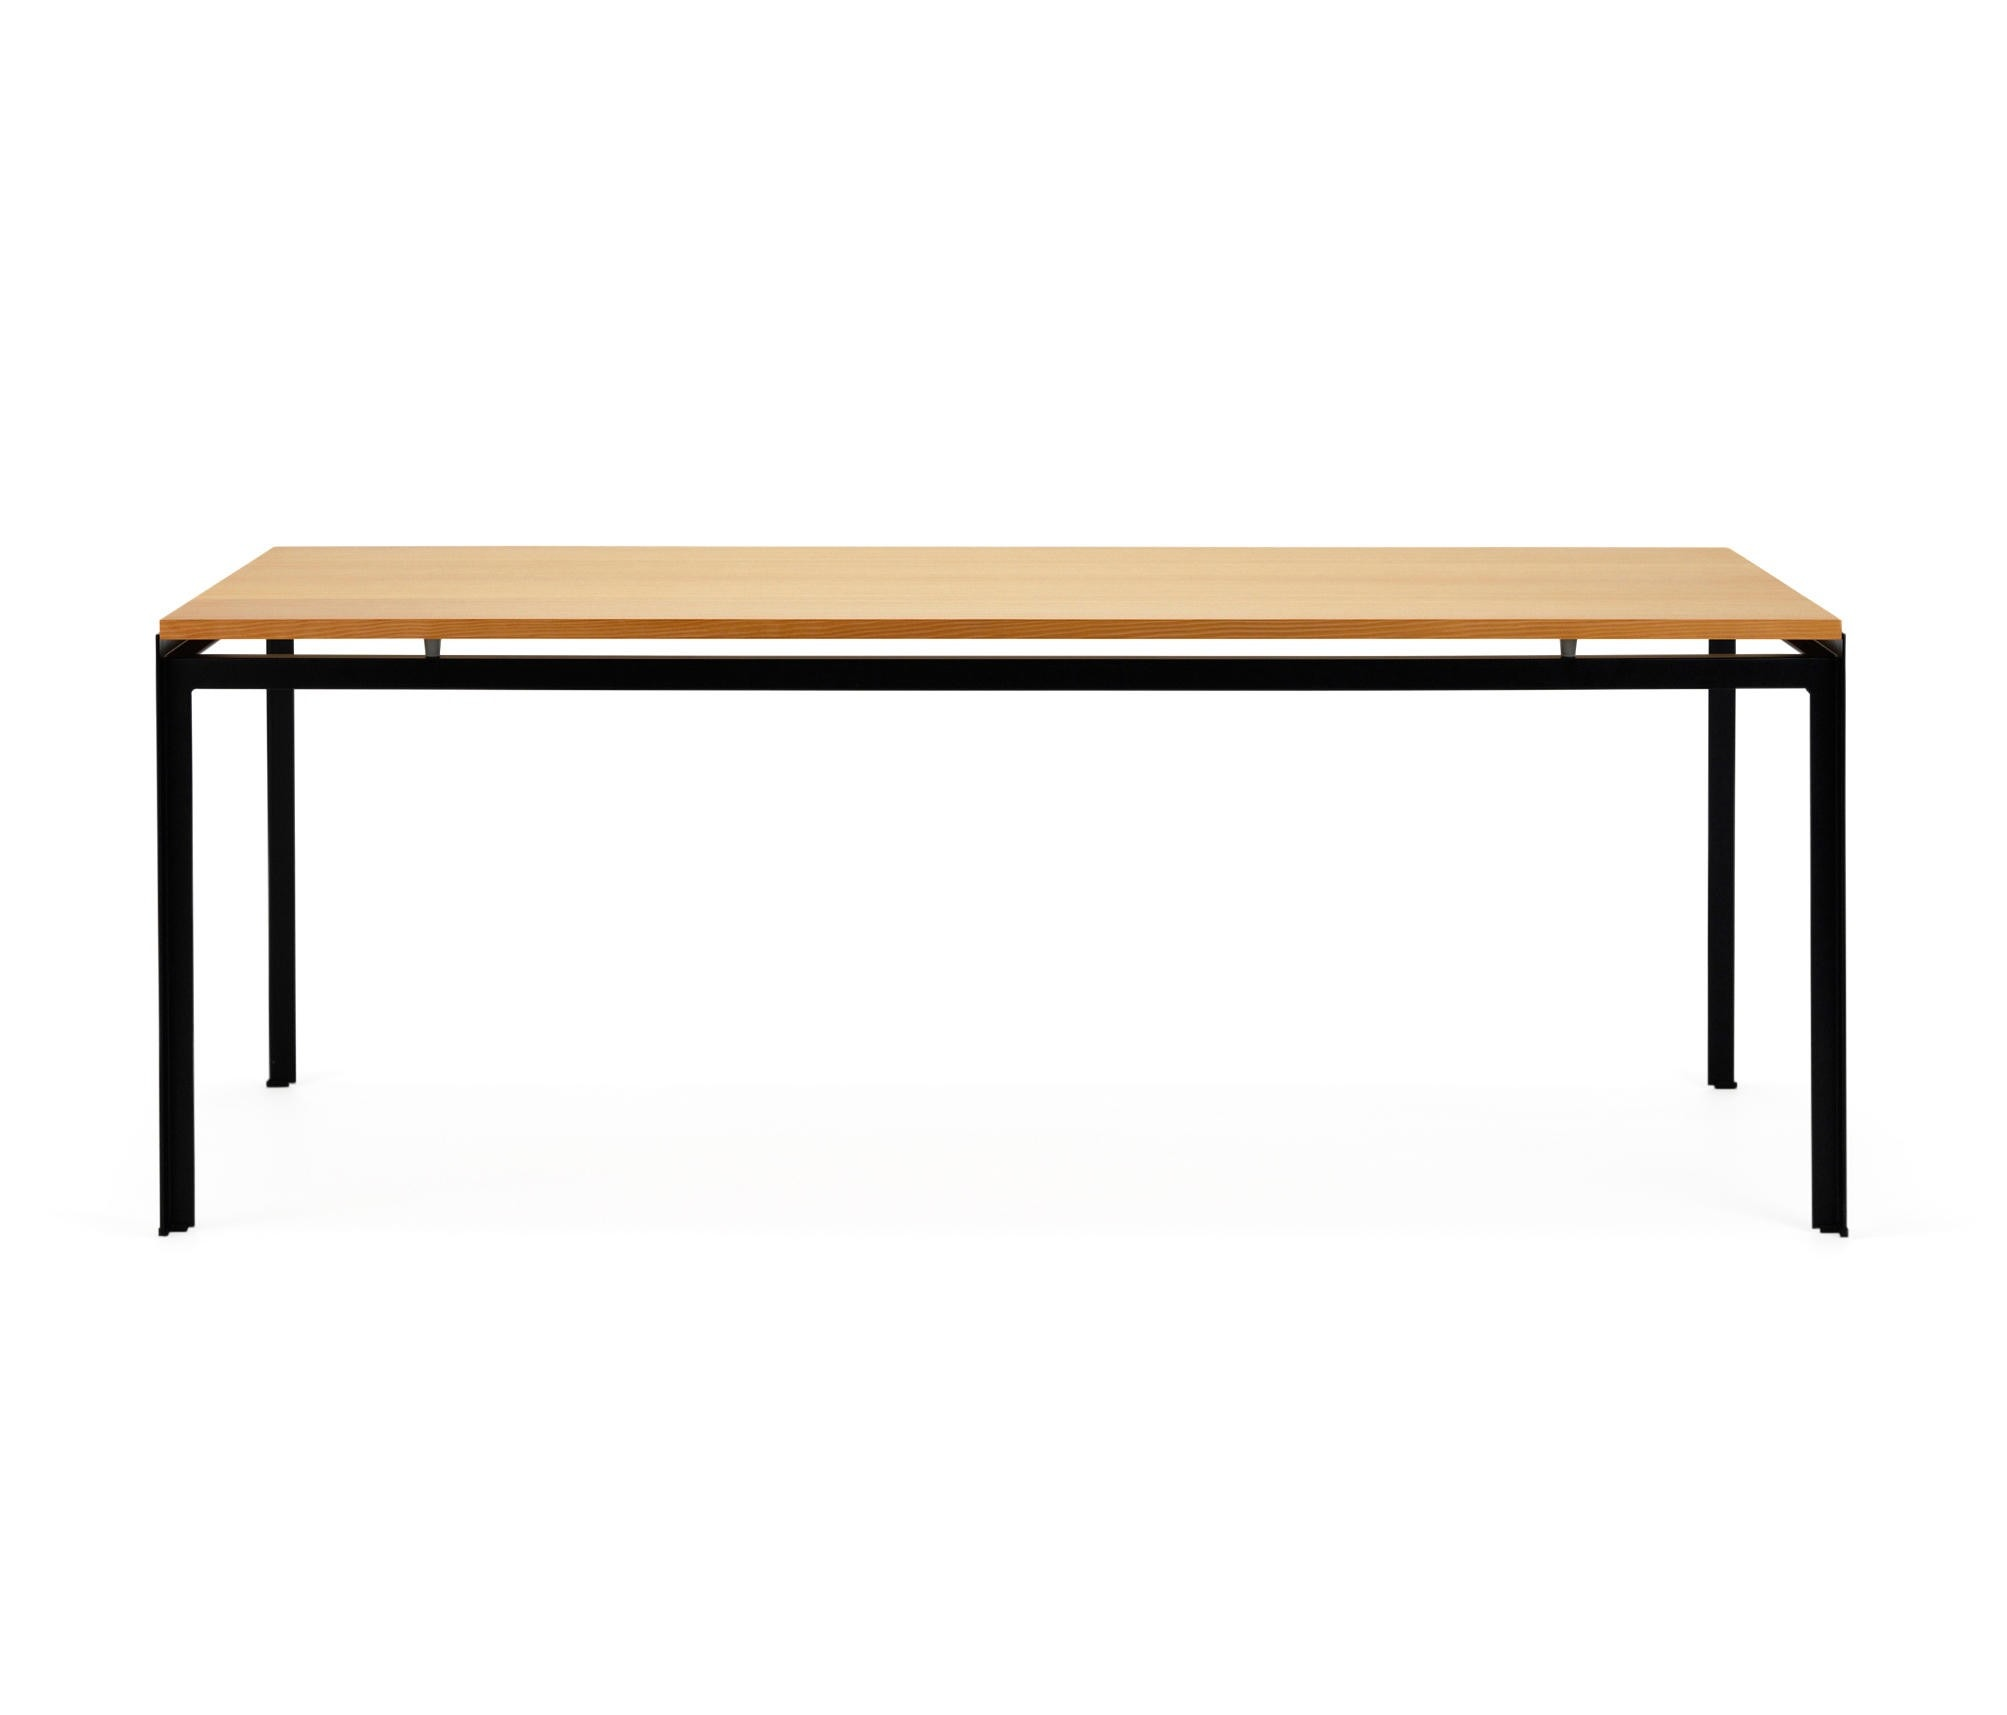 Carl Hansen & Son PK52 Professor Desk